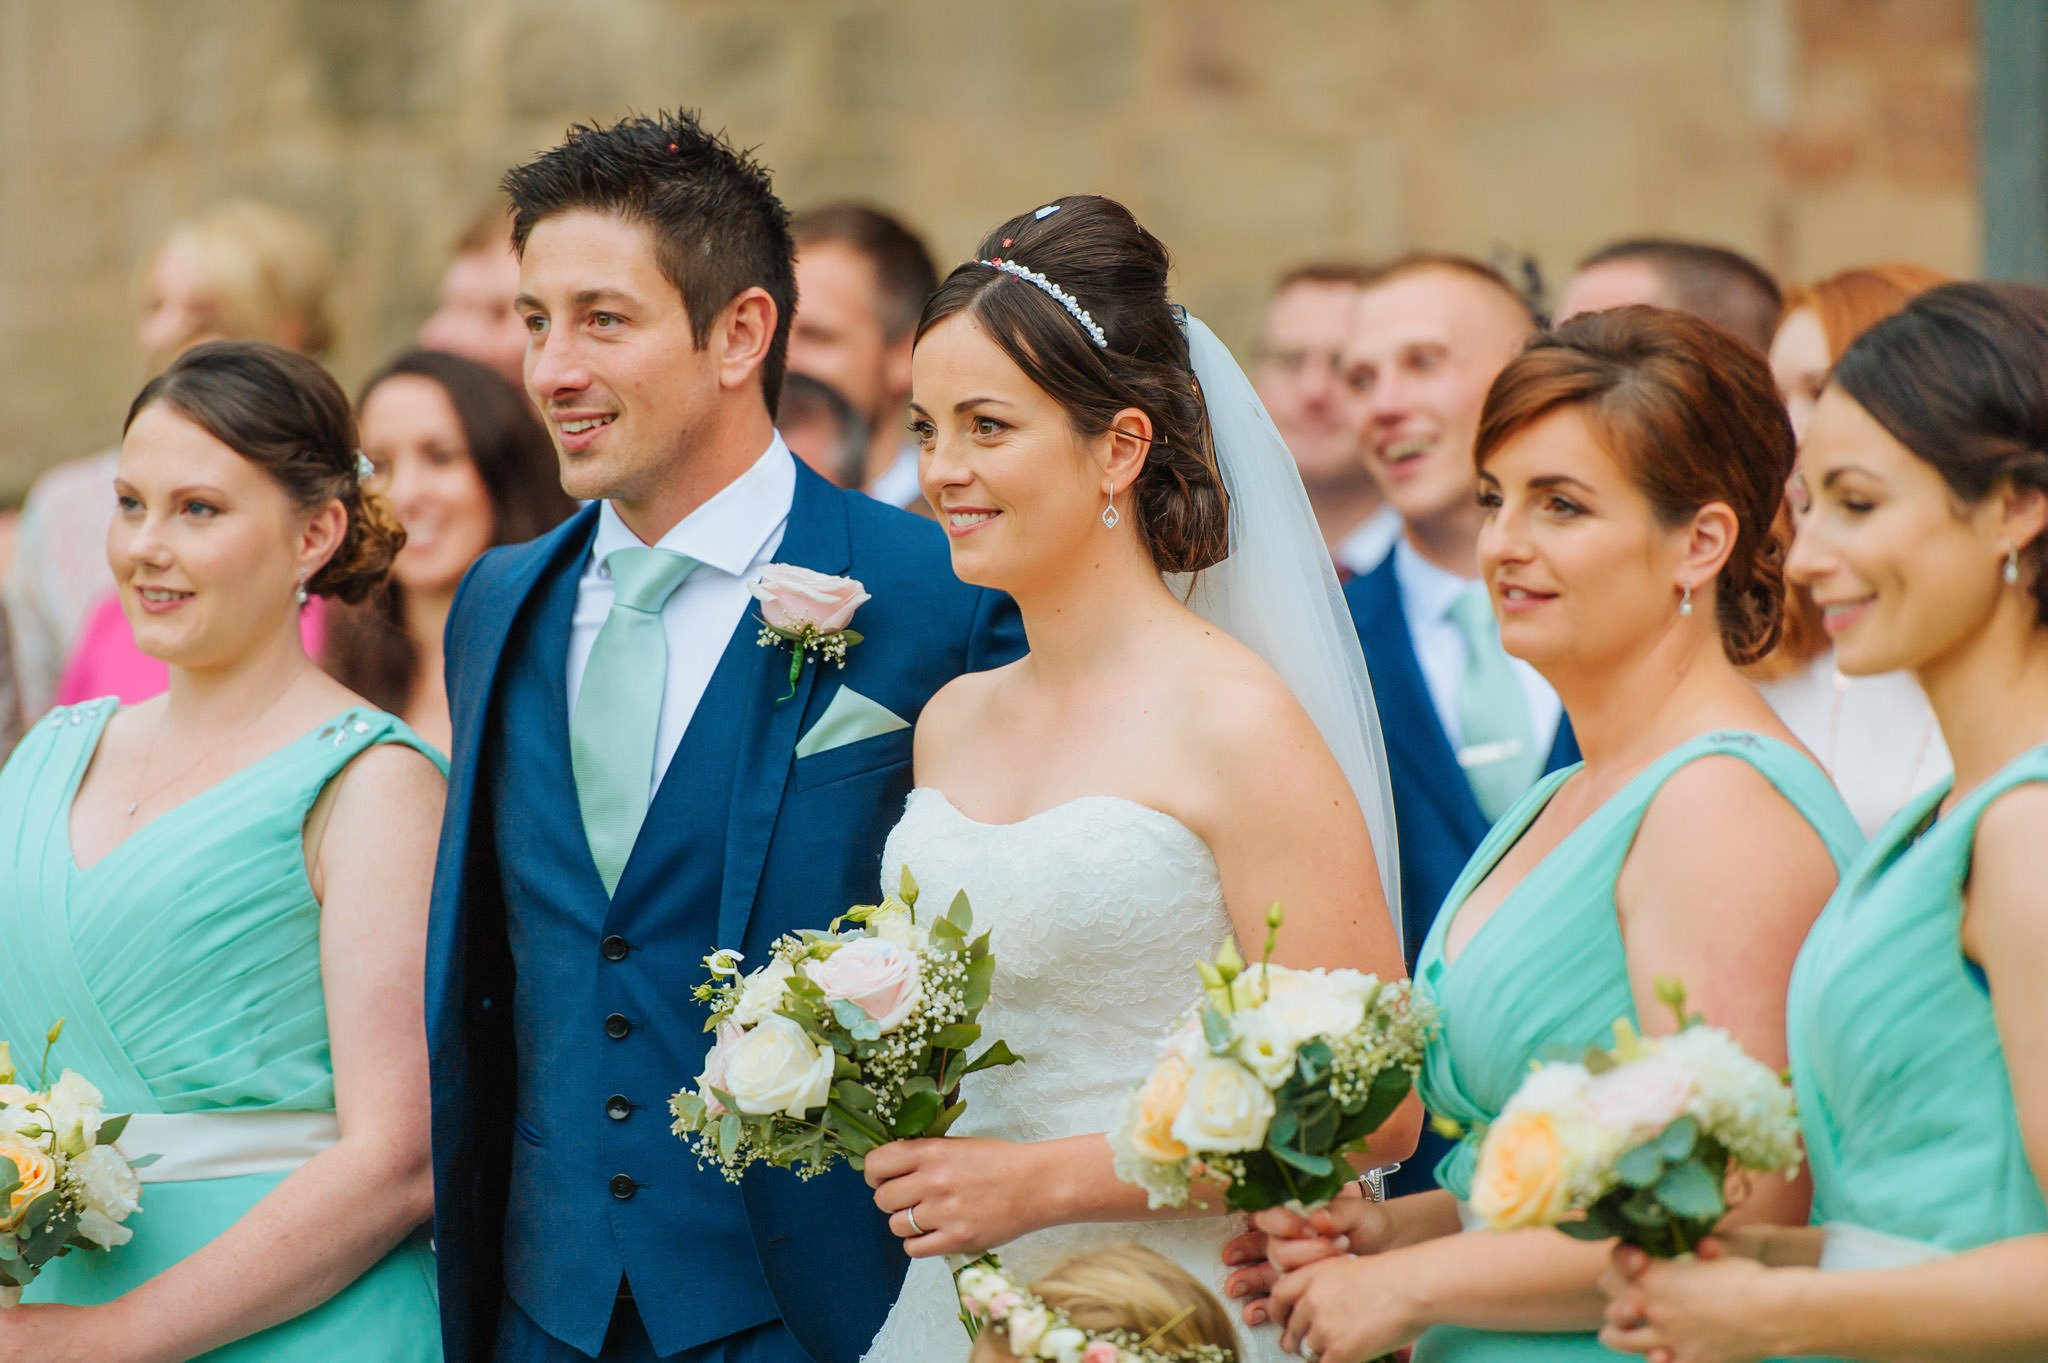 eastnor castle wedding pictures 45 - Eastnor Castle wedding photographer Herefordshire, West Midlands - Sarah + Dean